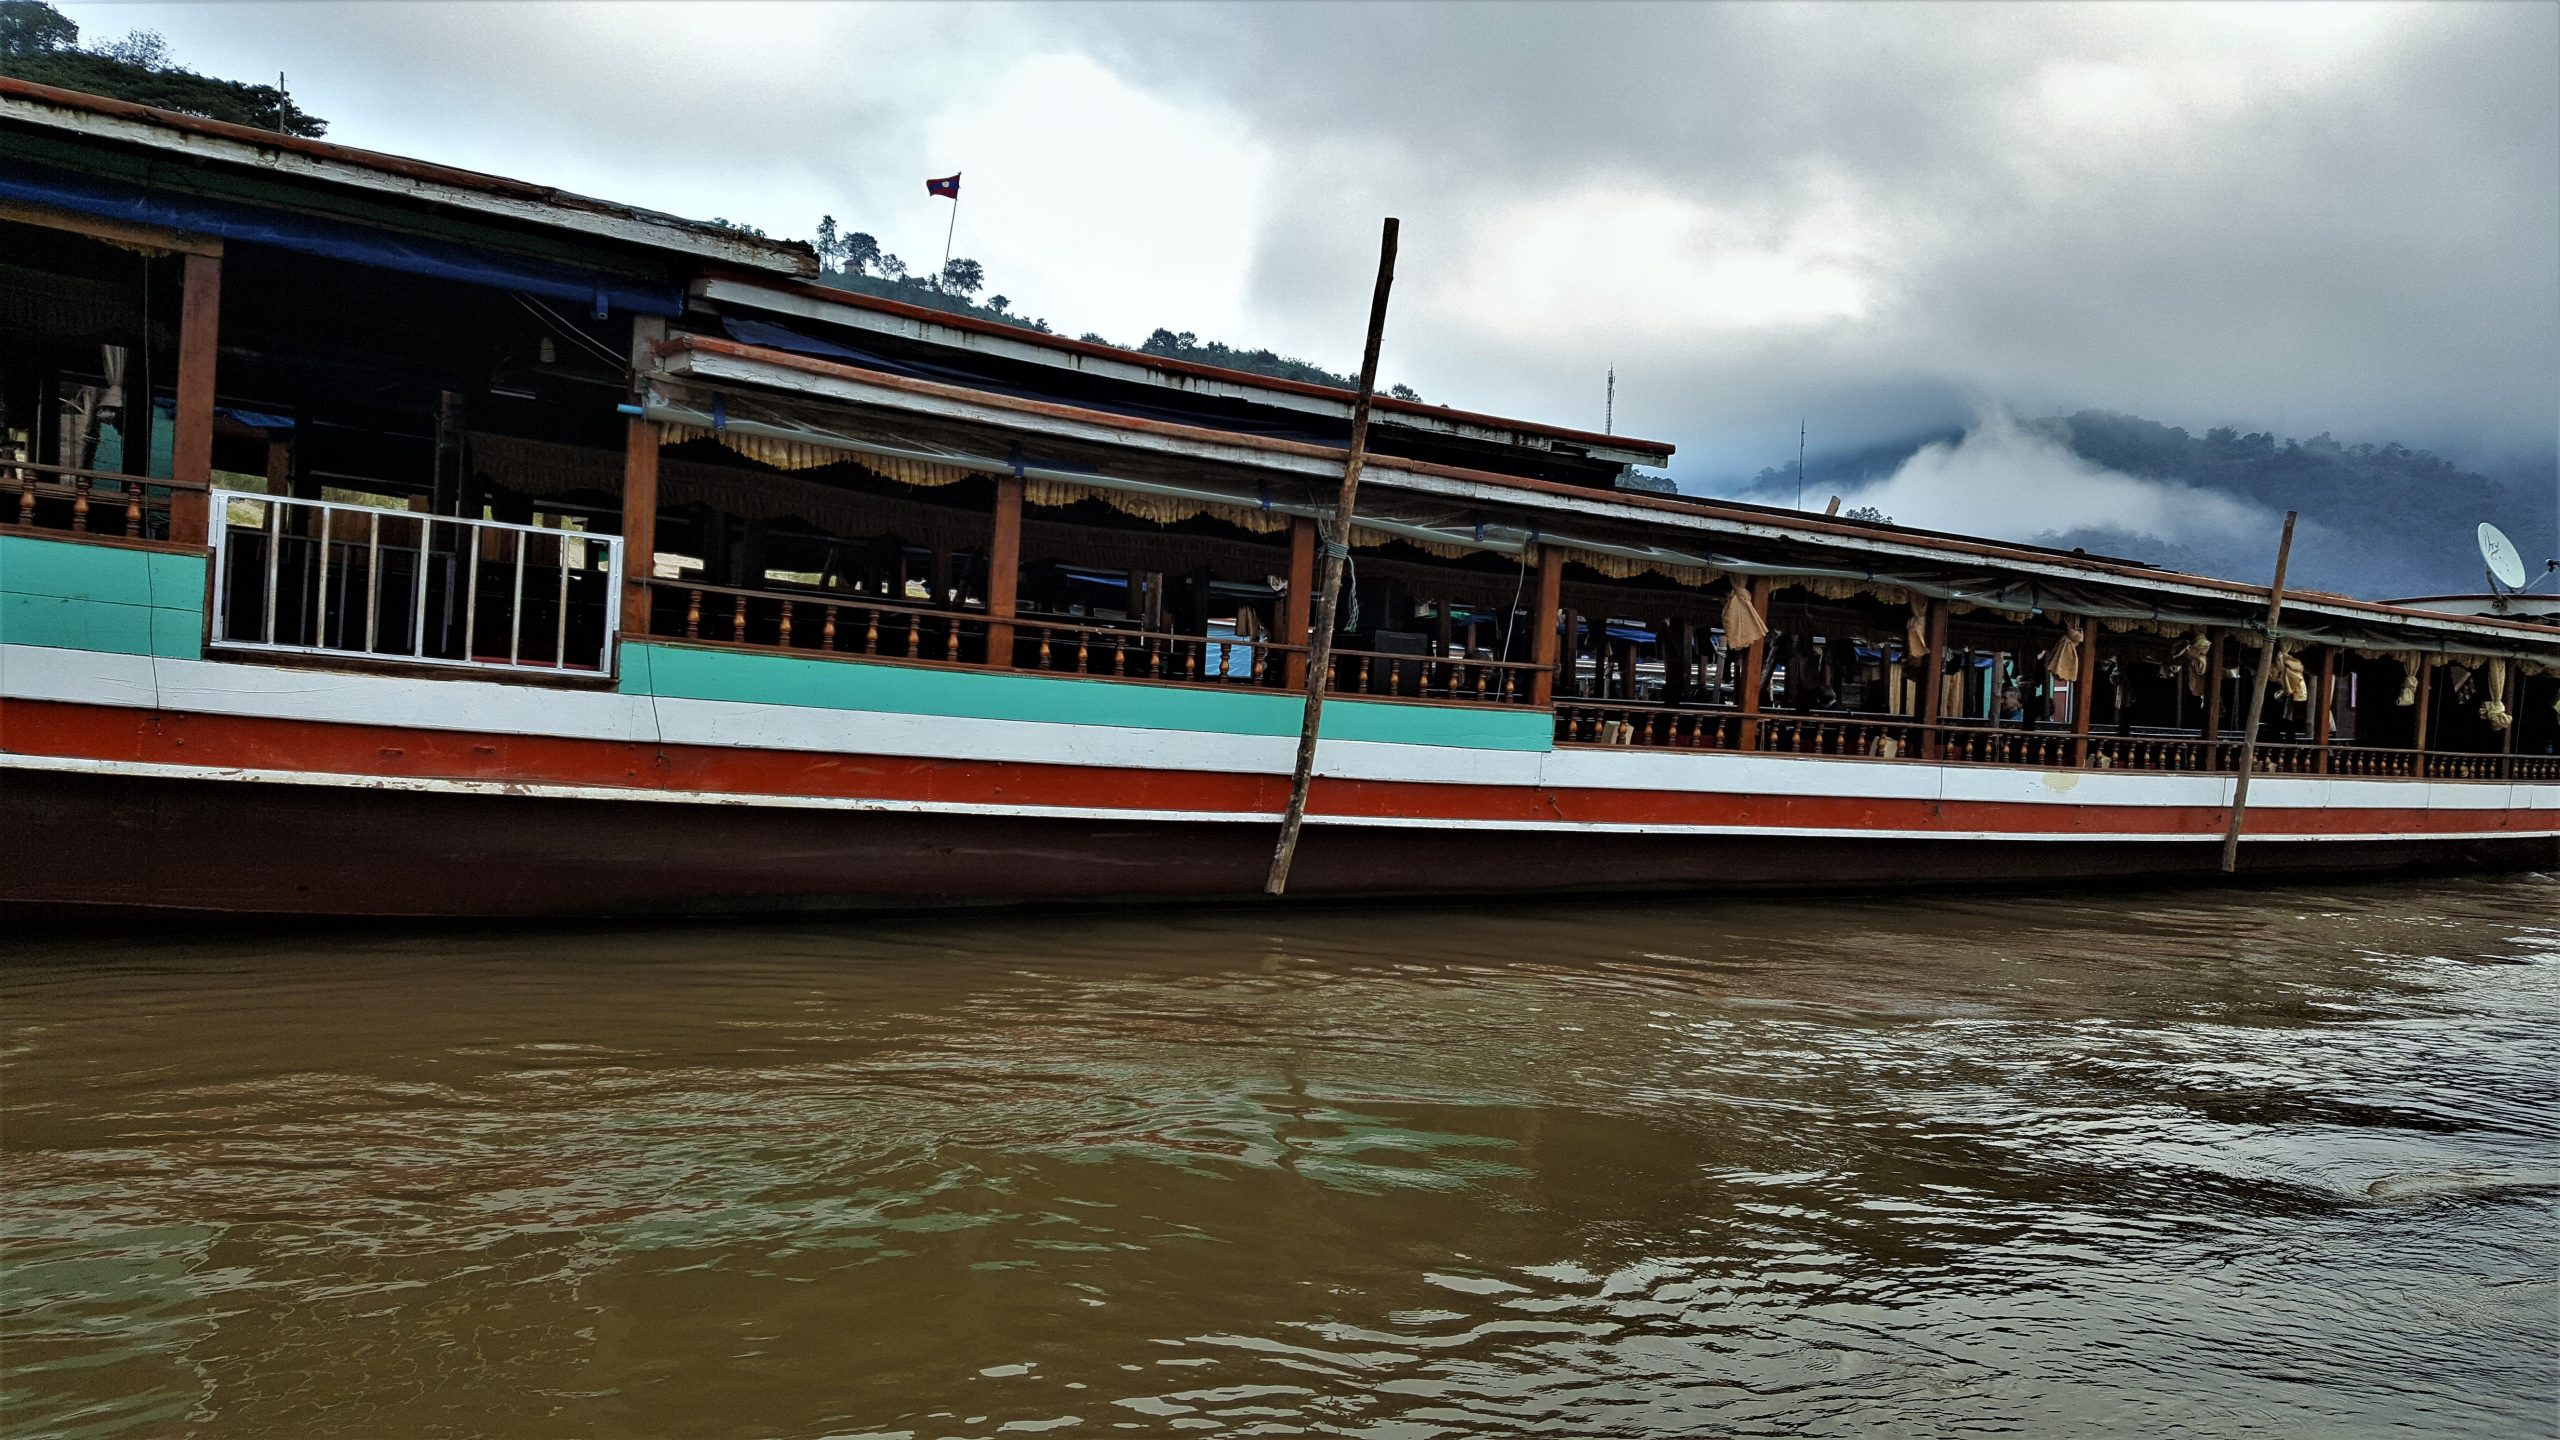 What to Expect on the Slow Boat to Laos